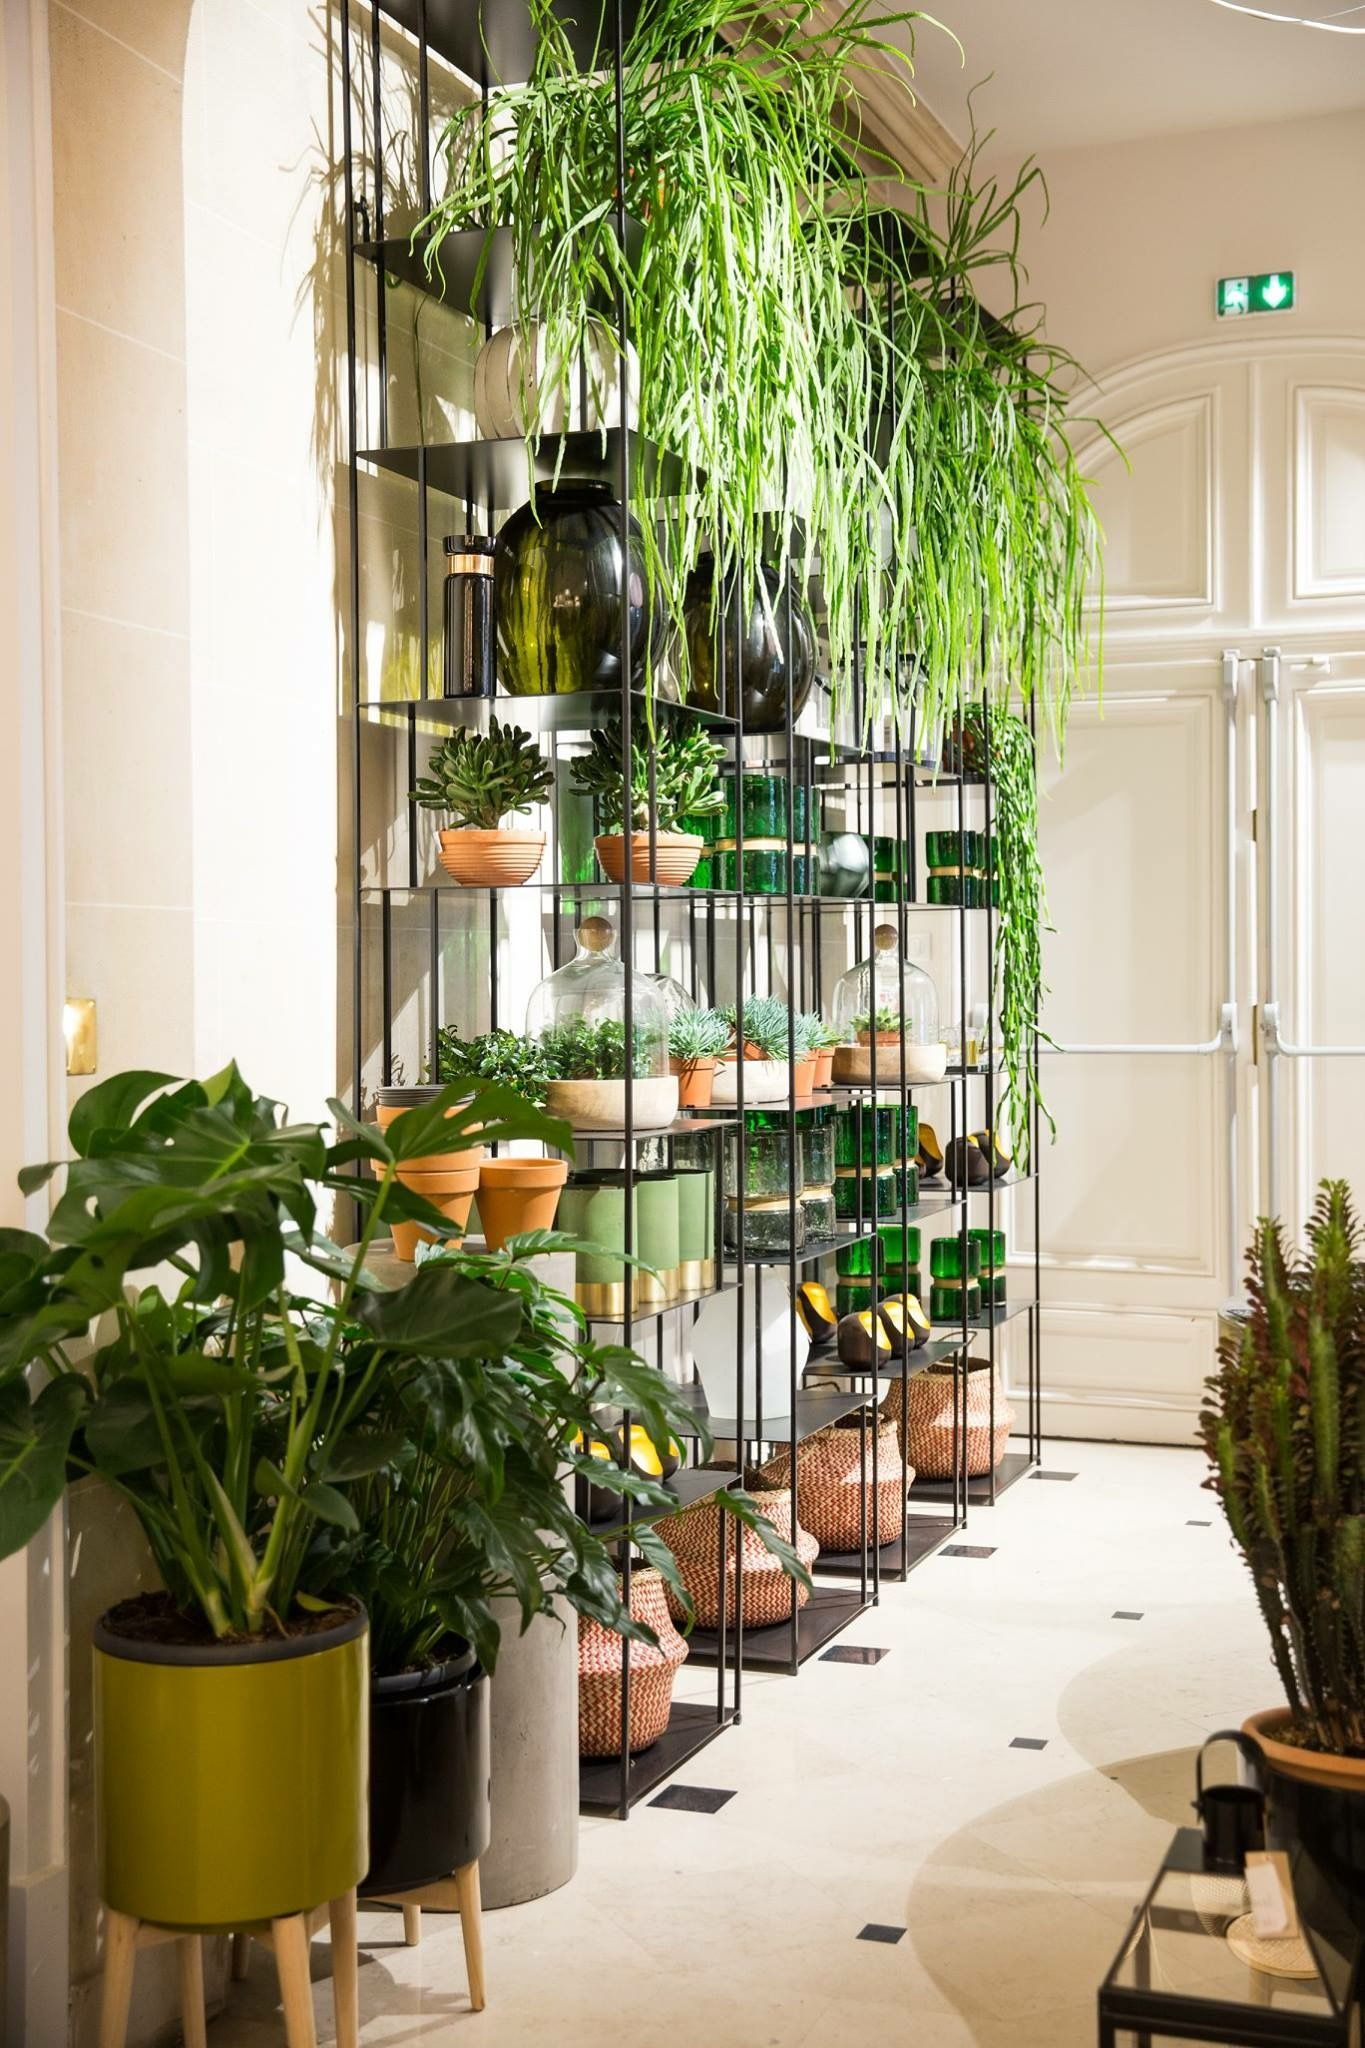 Plant Shelving Indoor Pin By Wonkchic On Sanctuary In 2019 Indoor Plants